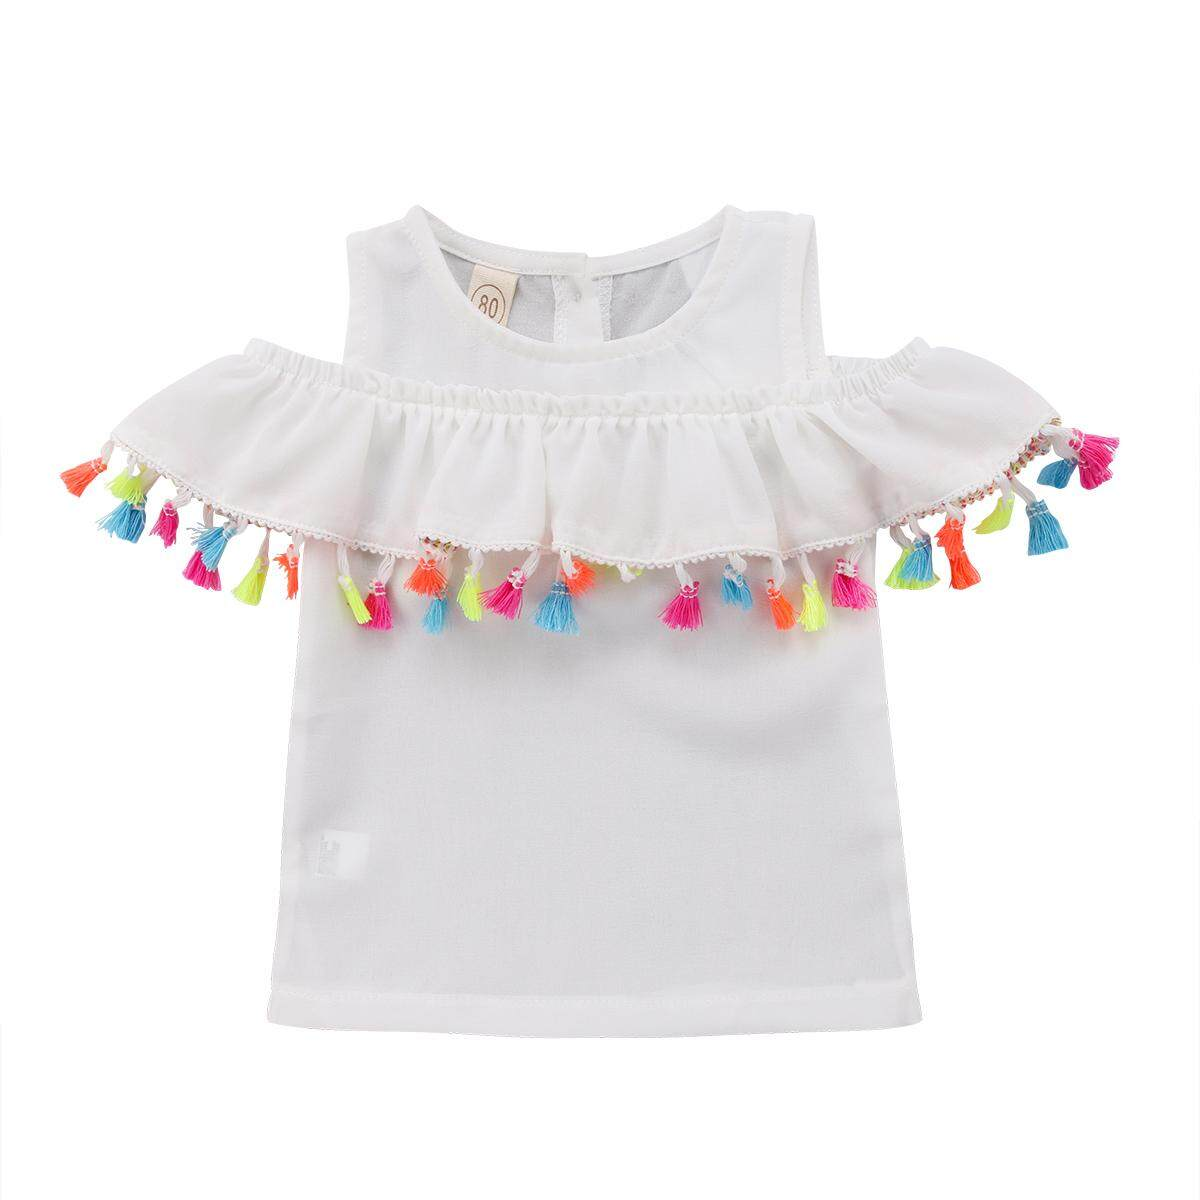 Kids Baby Girl White Blue Outfit Shirt Off-Shoulder Tassels T-Shirt Clothes By Gm Mall.